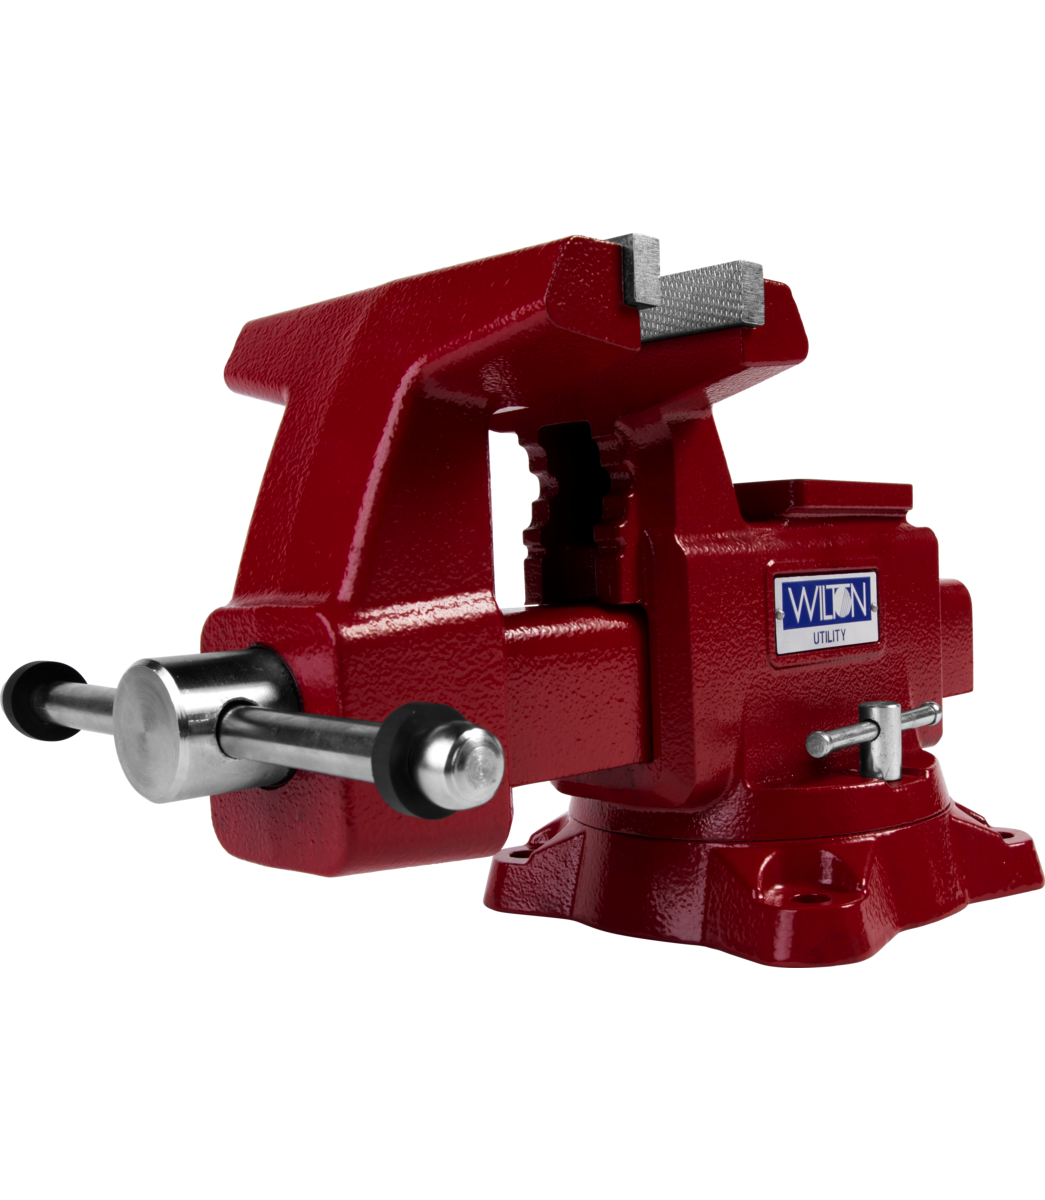 "Manual: Utility Bench Vise 6-1/2"" Jaw Width, 6"" Jaw Opening, 360° Swivel Base"